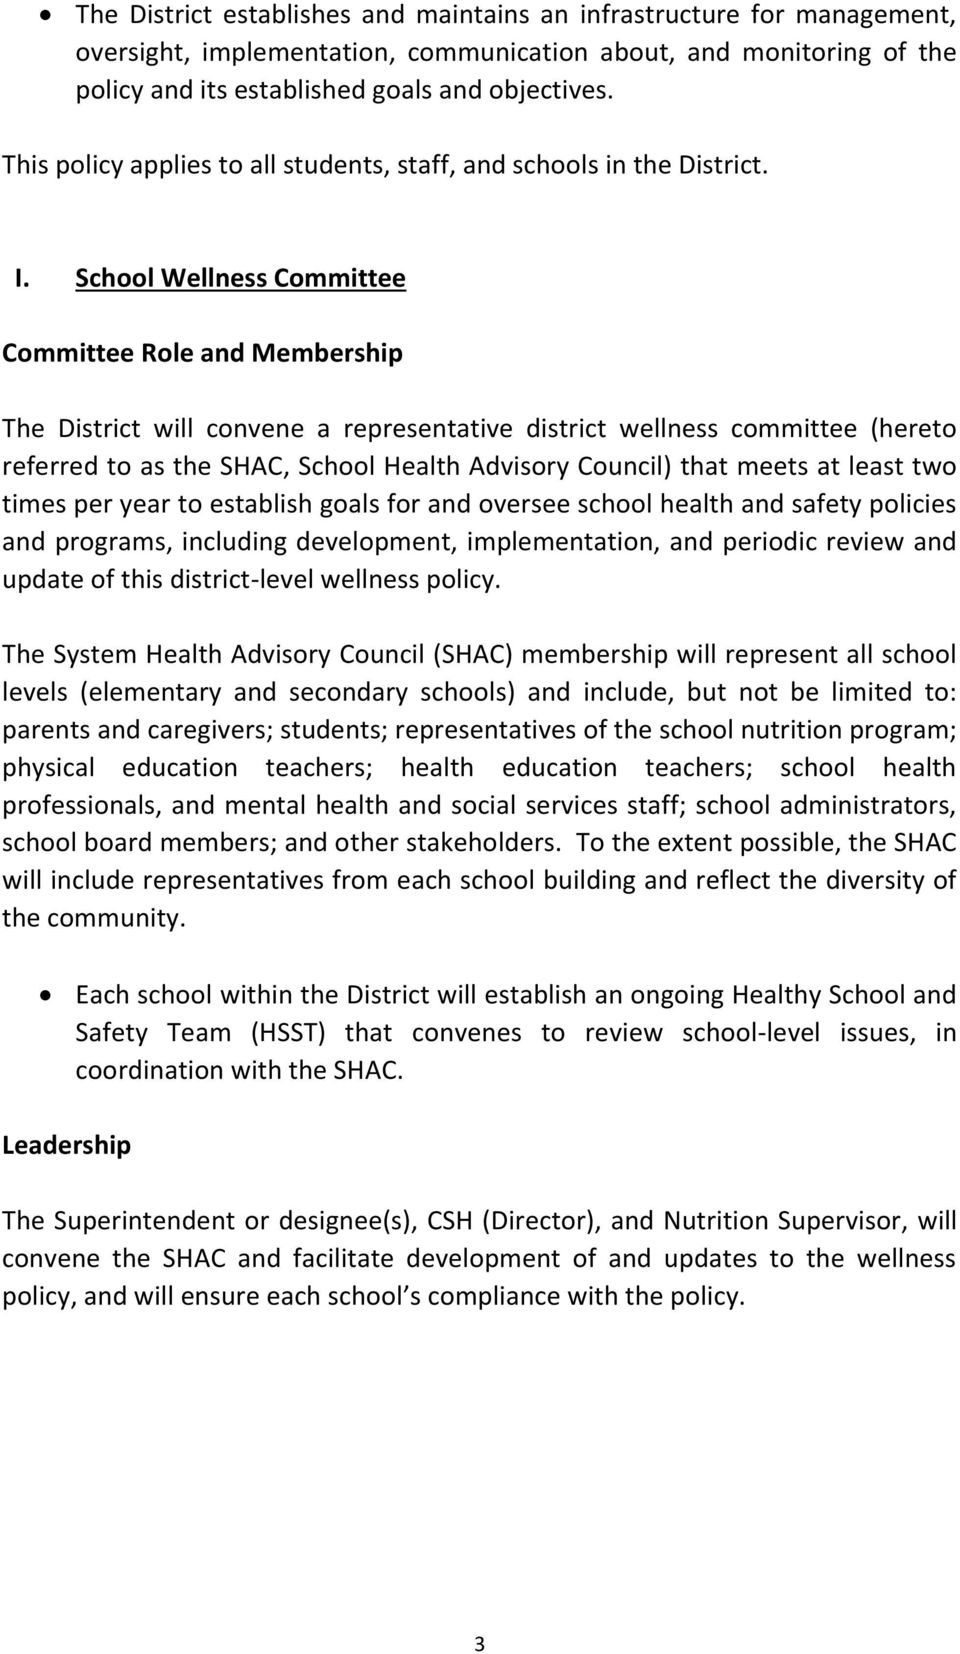 School Wellness Committee Committee Role and Membership The District will convene a representative district wellness committee (hereto referred to as the SHAC, School Health Advisory Council) that